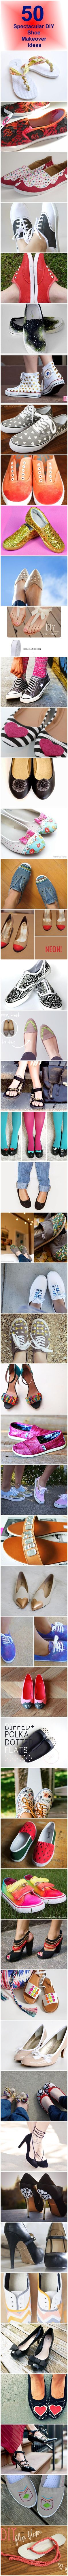 50 Spectacular DIY Shoe Makeover Ideas